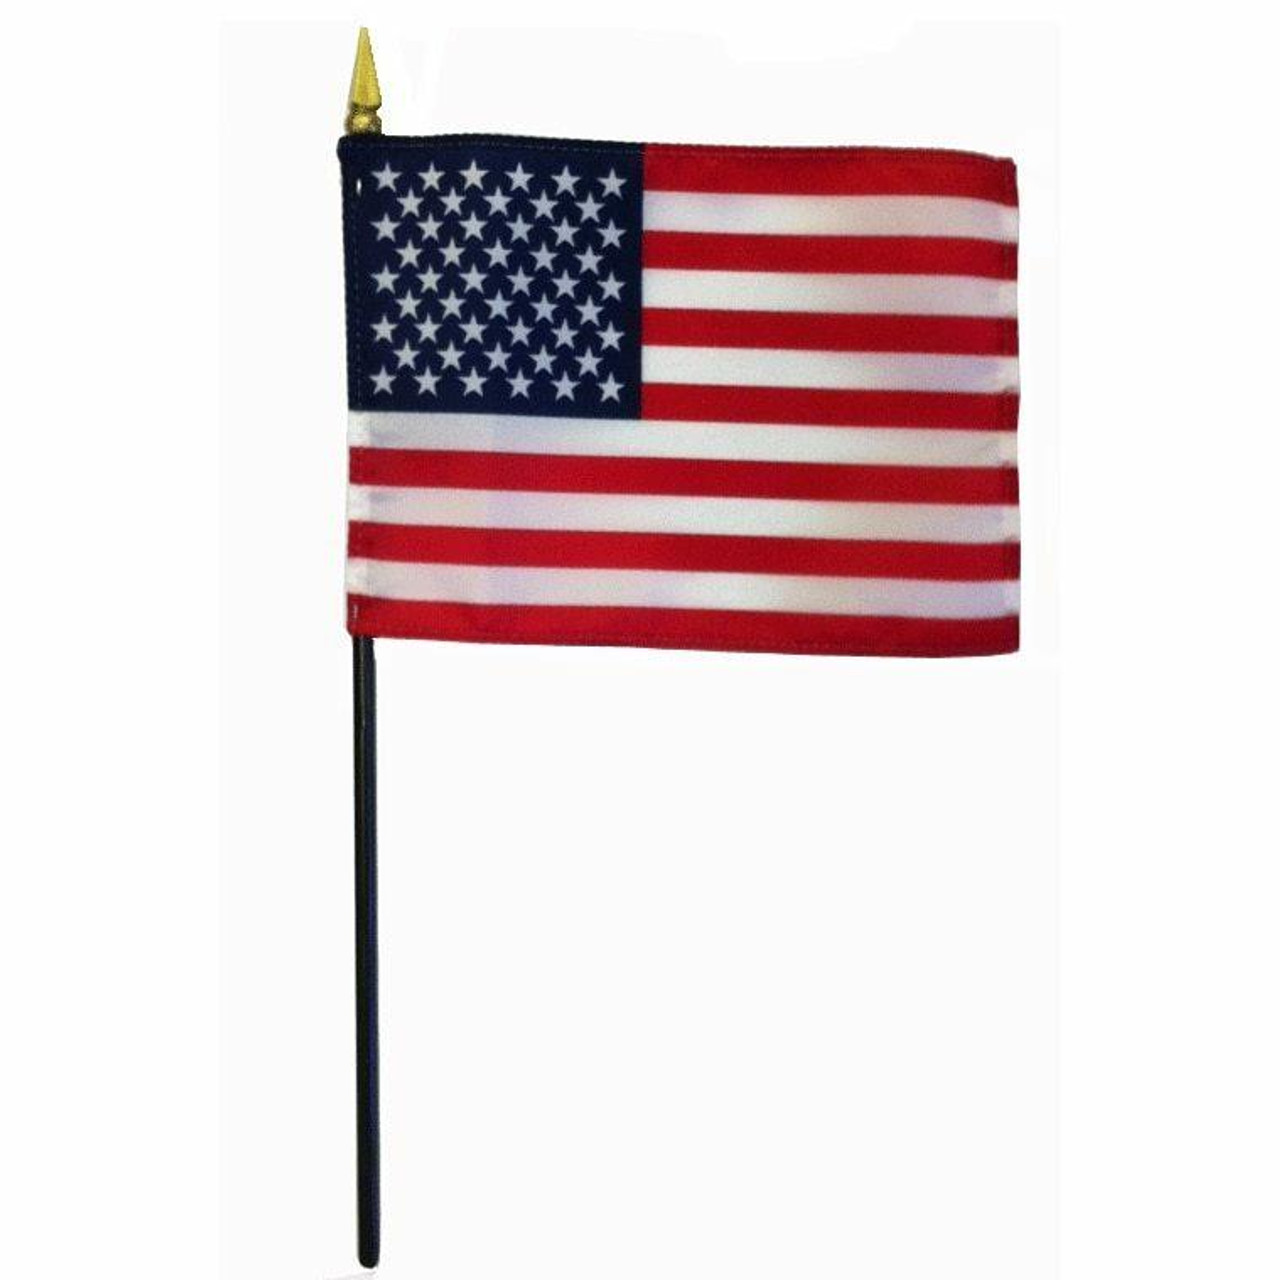 Silky polyester American stick flag. The U.S. Stick flag features 13 alternating red and white horizontal stripes with a blue rectangle and 50 white stars in the upper left-hand corner. The flag is mounted on a black staff, and a gold spear sits at the top.